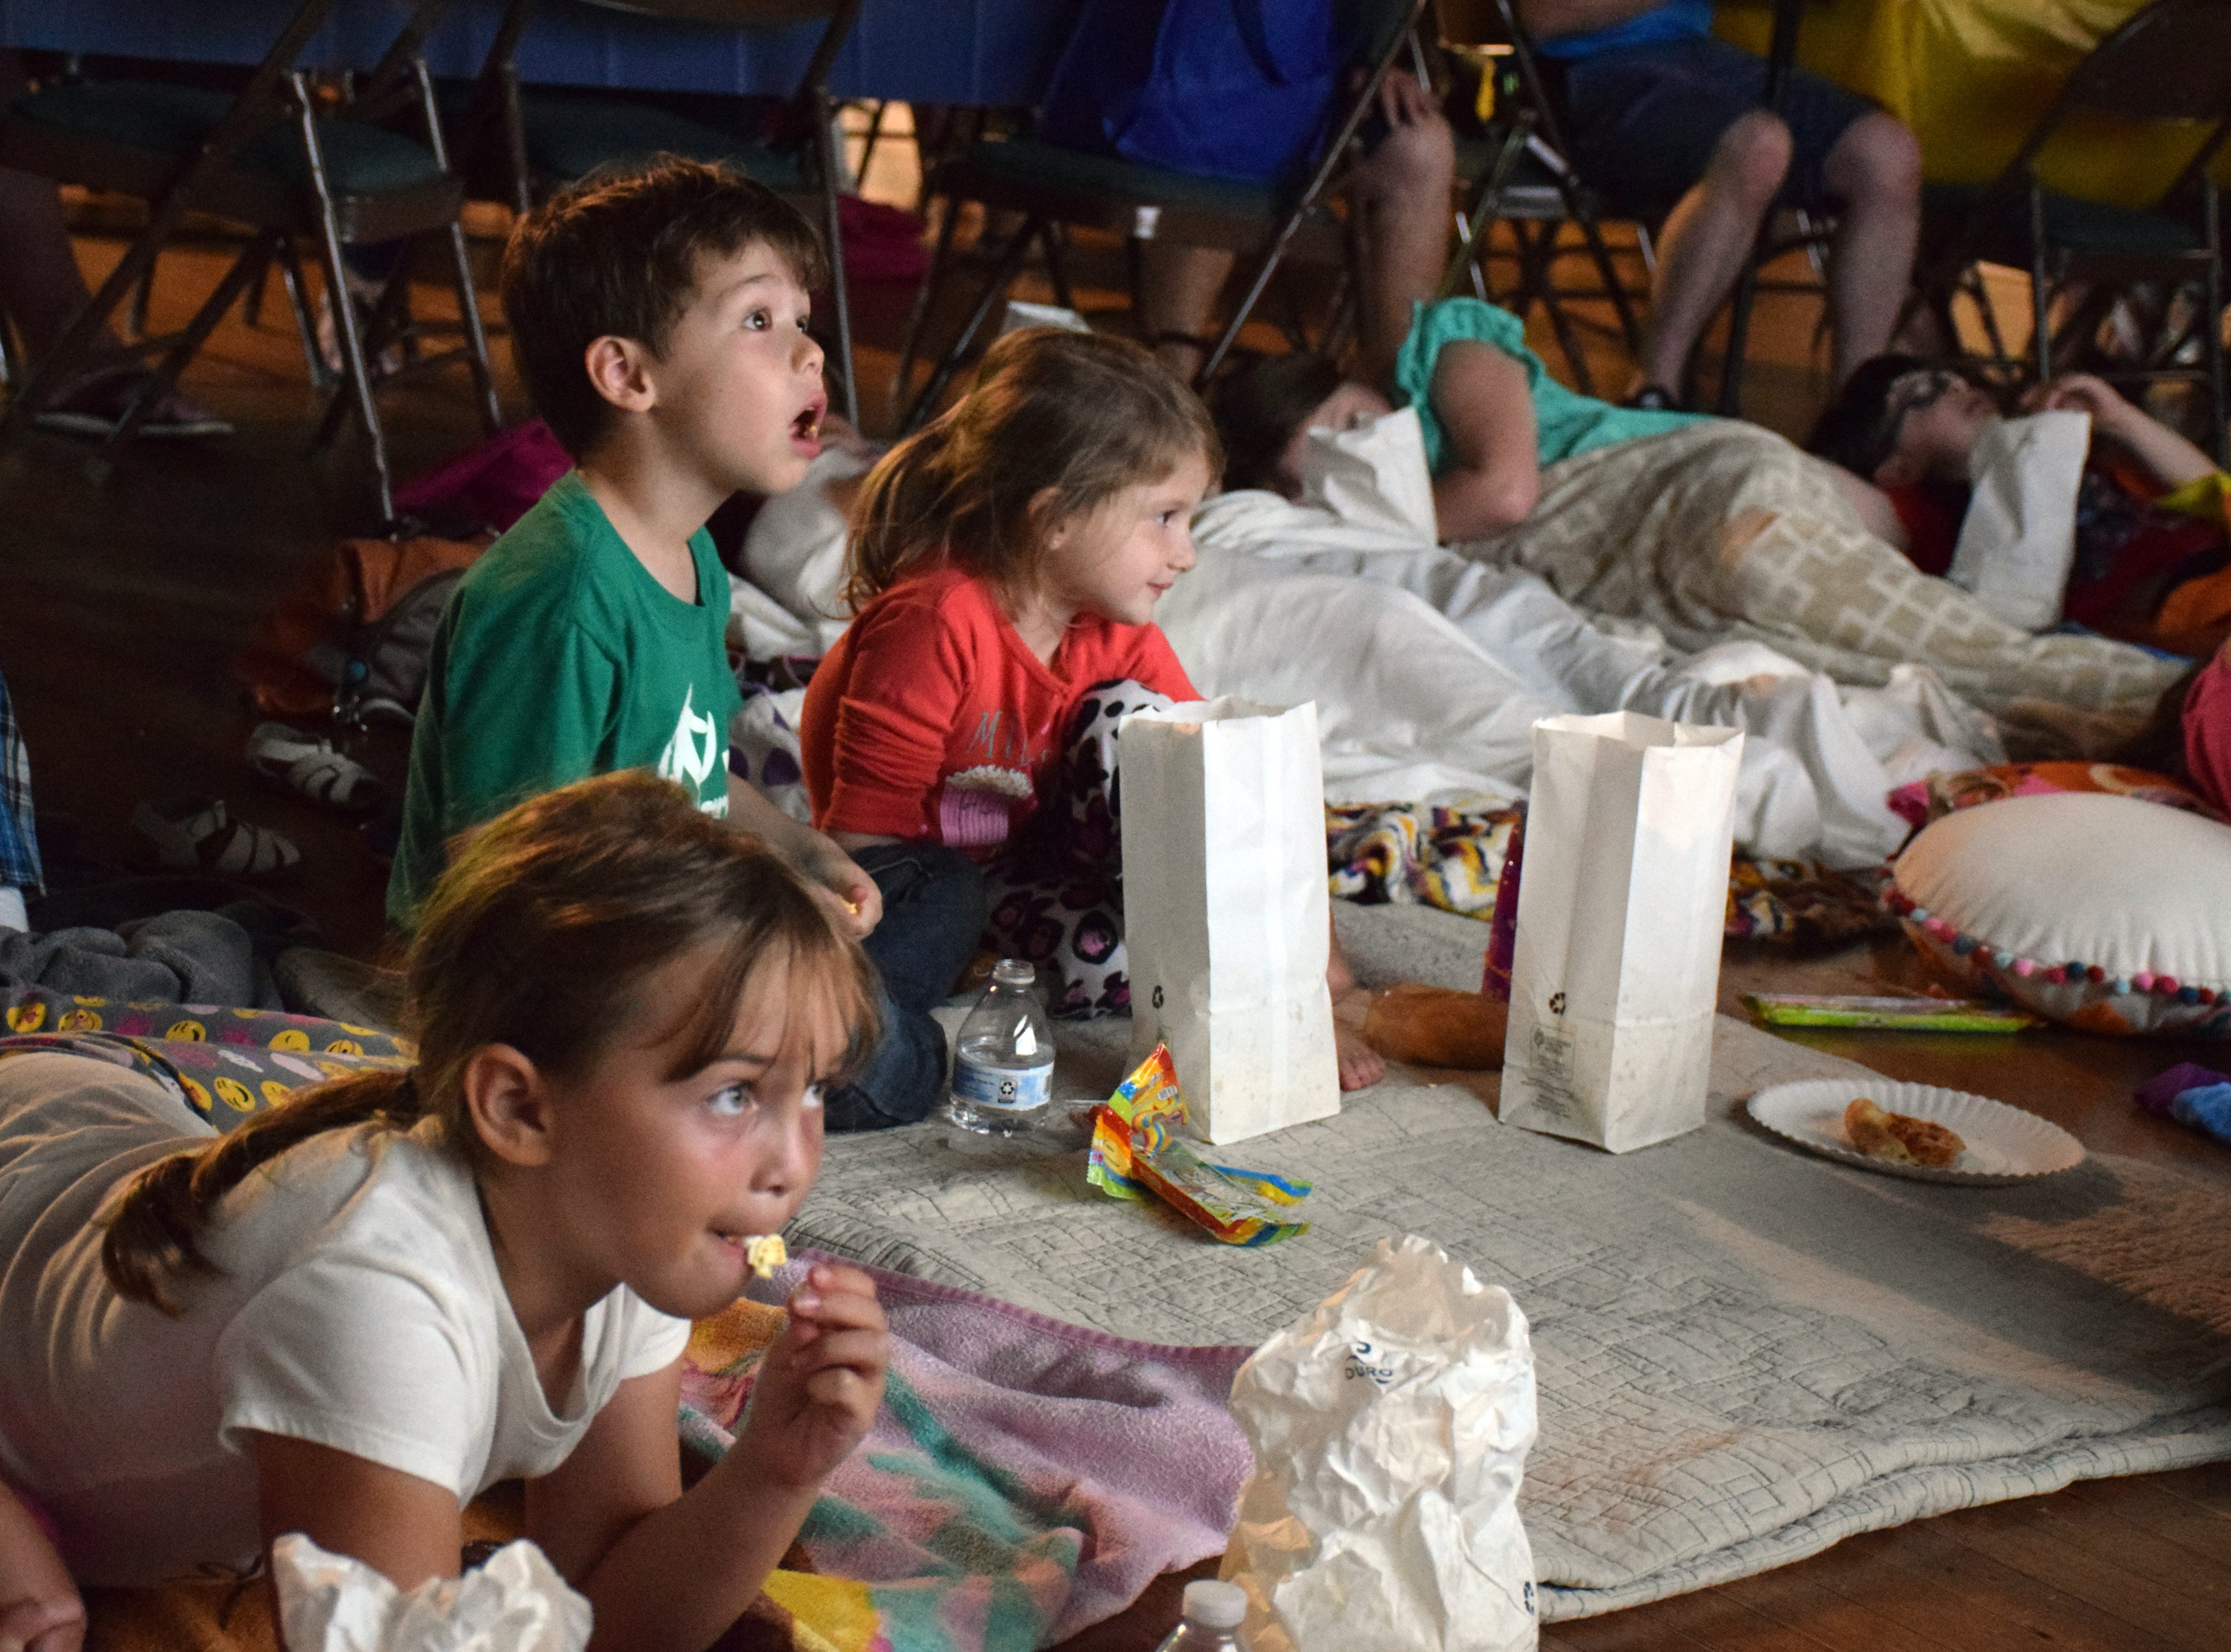 Children settle in to watch Inside Out family movie.